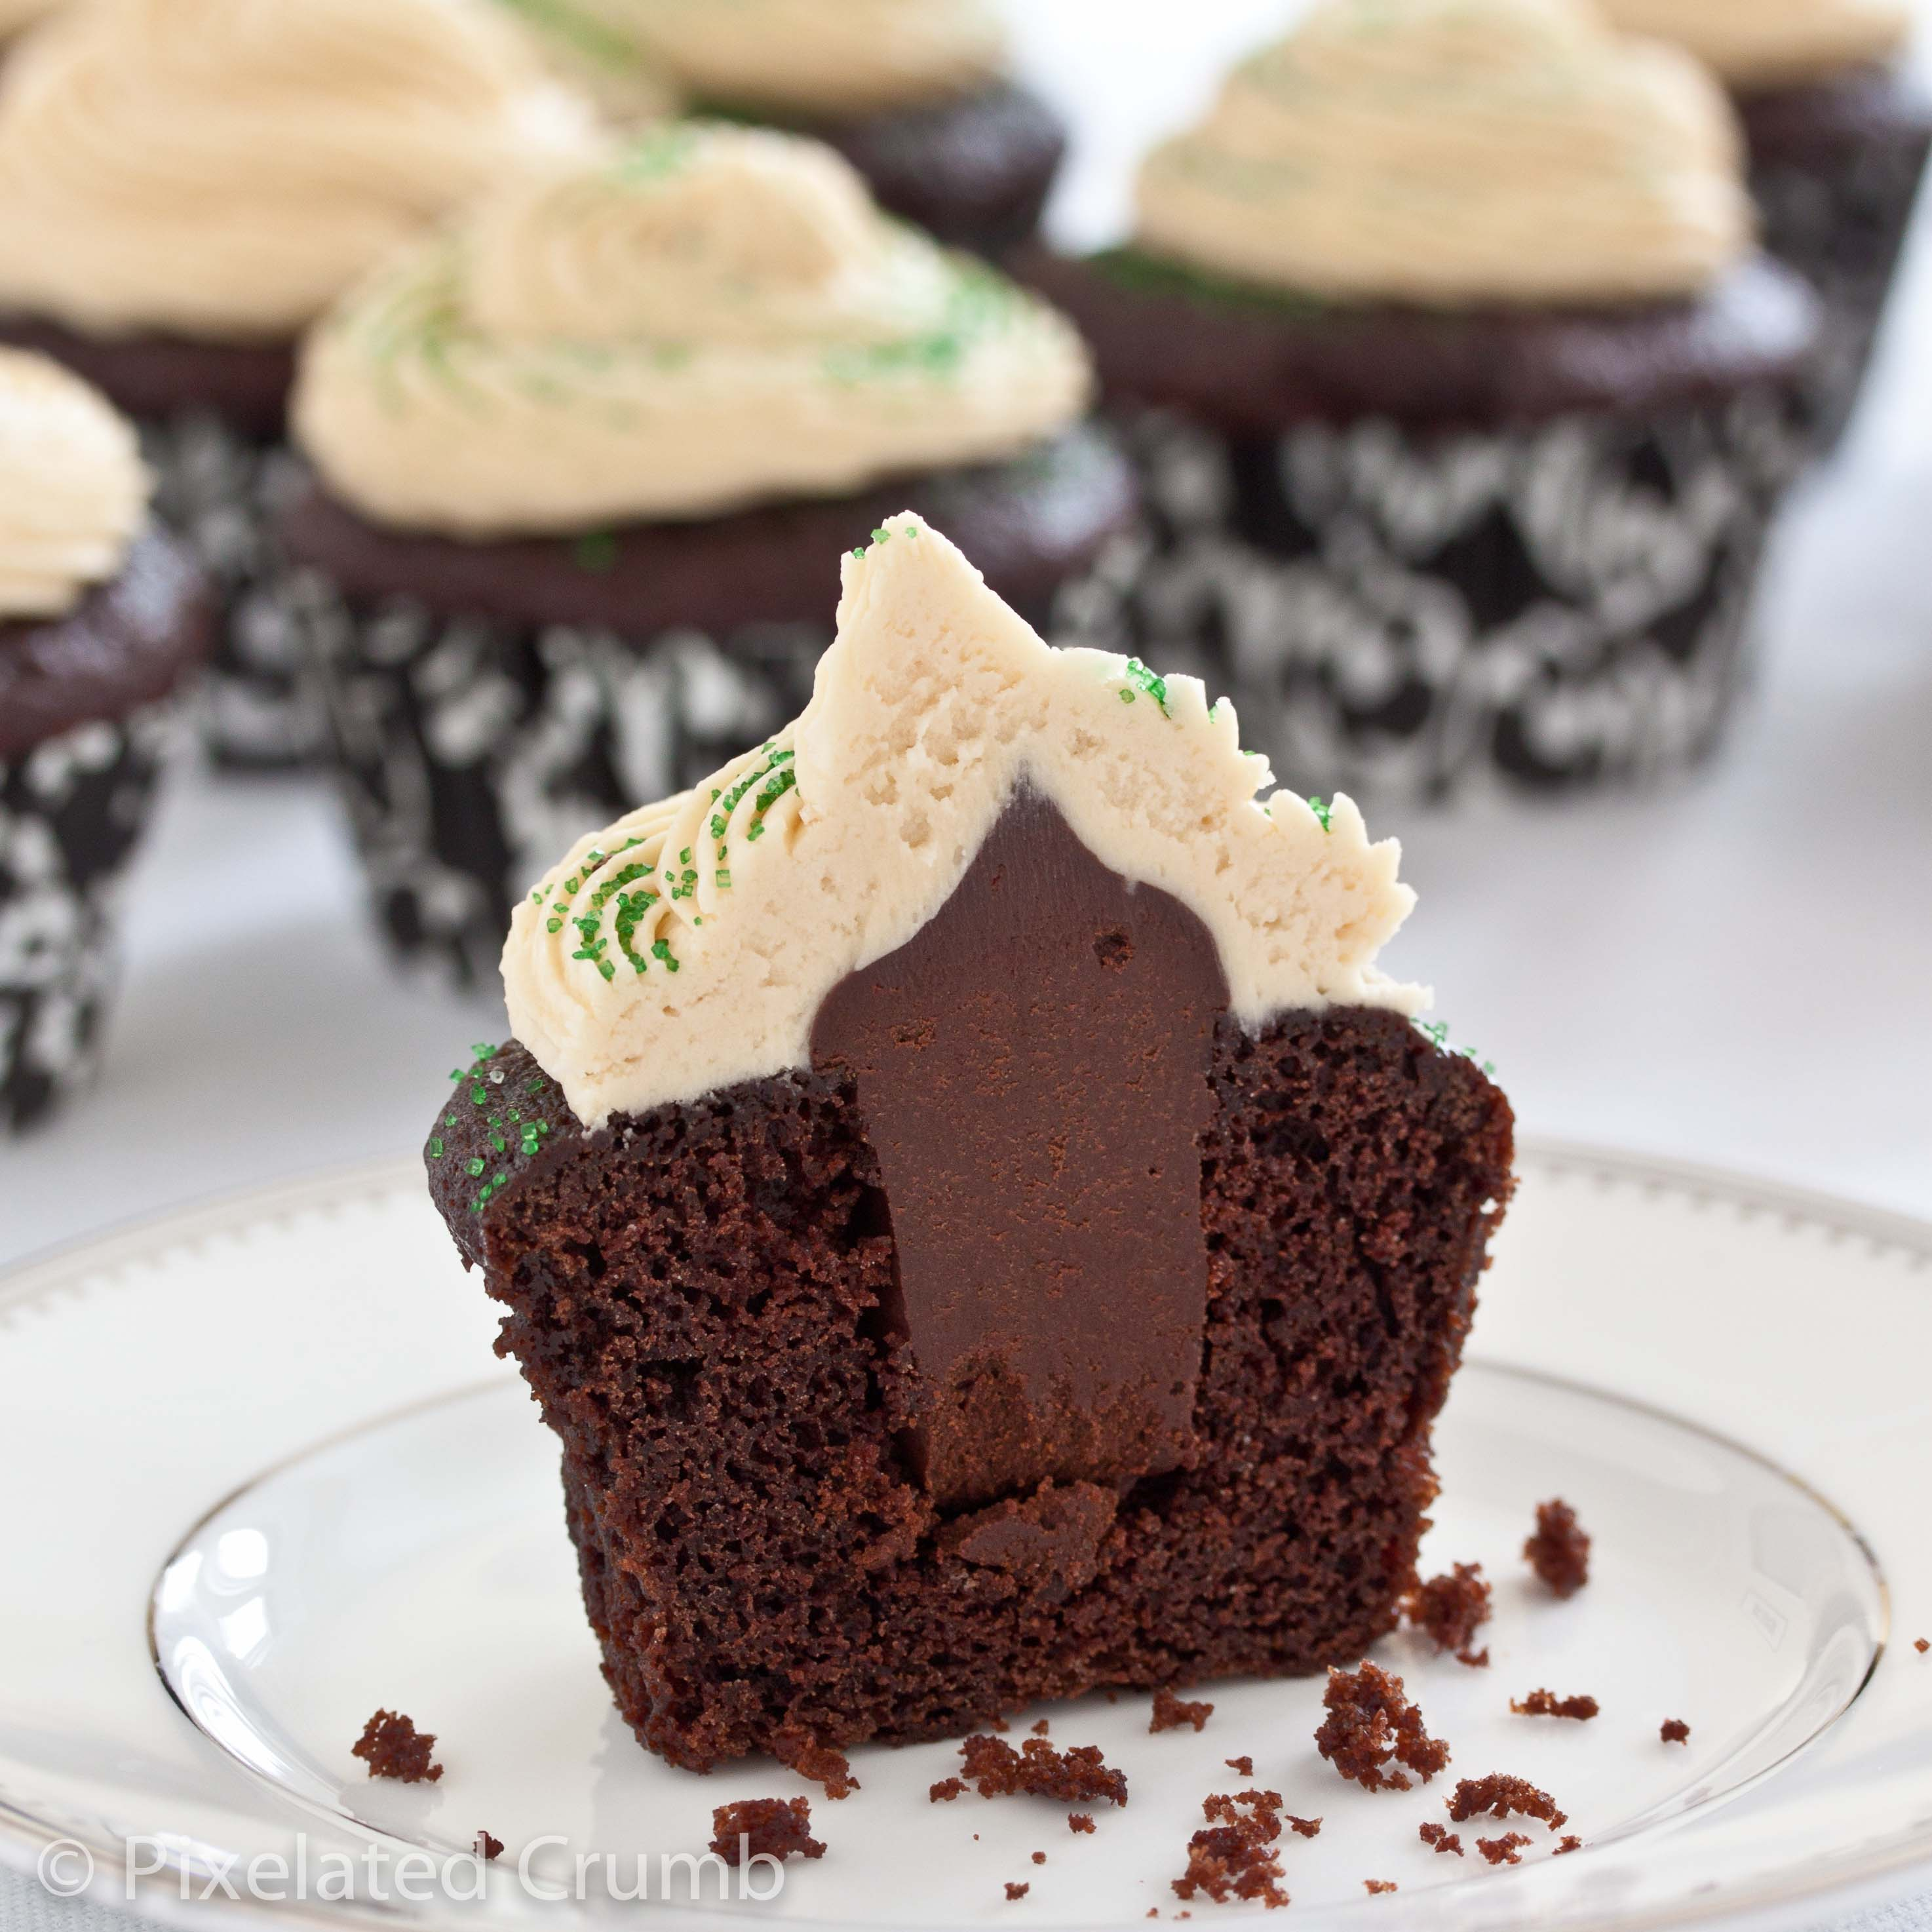 ... Cross-section of Chocolate Stout Cupcakes with Whiskey Ganache Filling